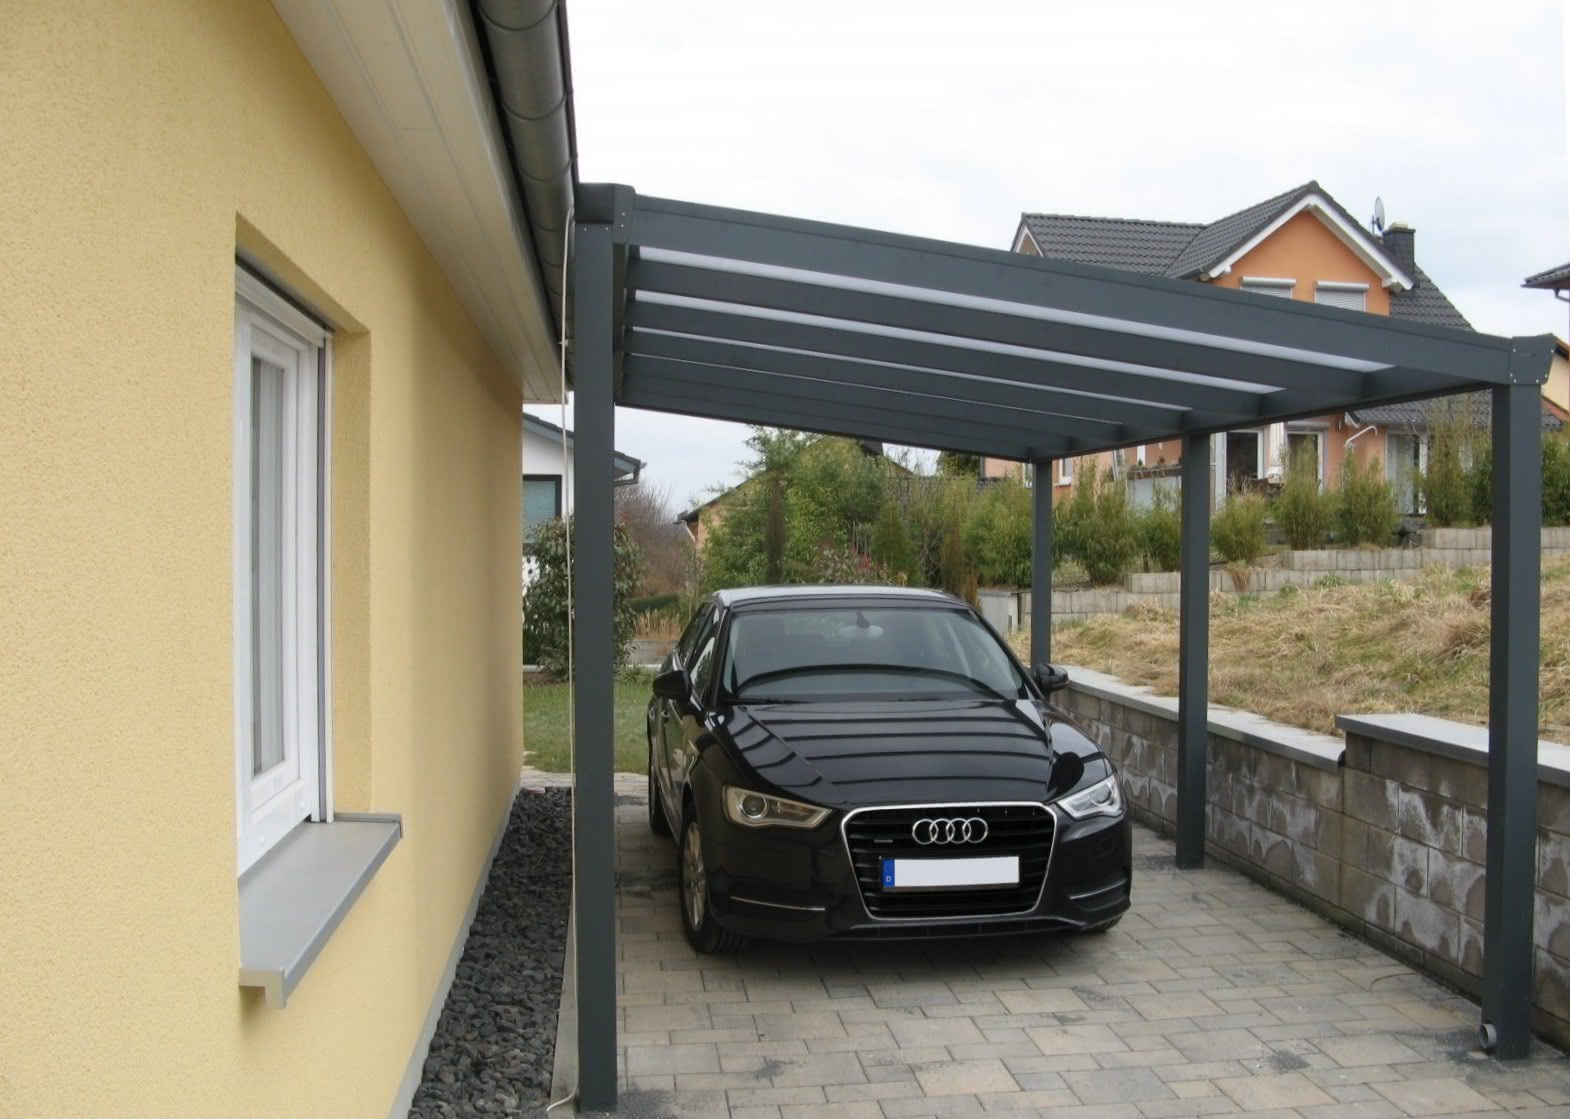 pultdach carport aus aluminium typ g mit gef lle zur seite. Black Bedroom Furniture Sets. Home Design Ideas